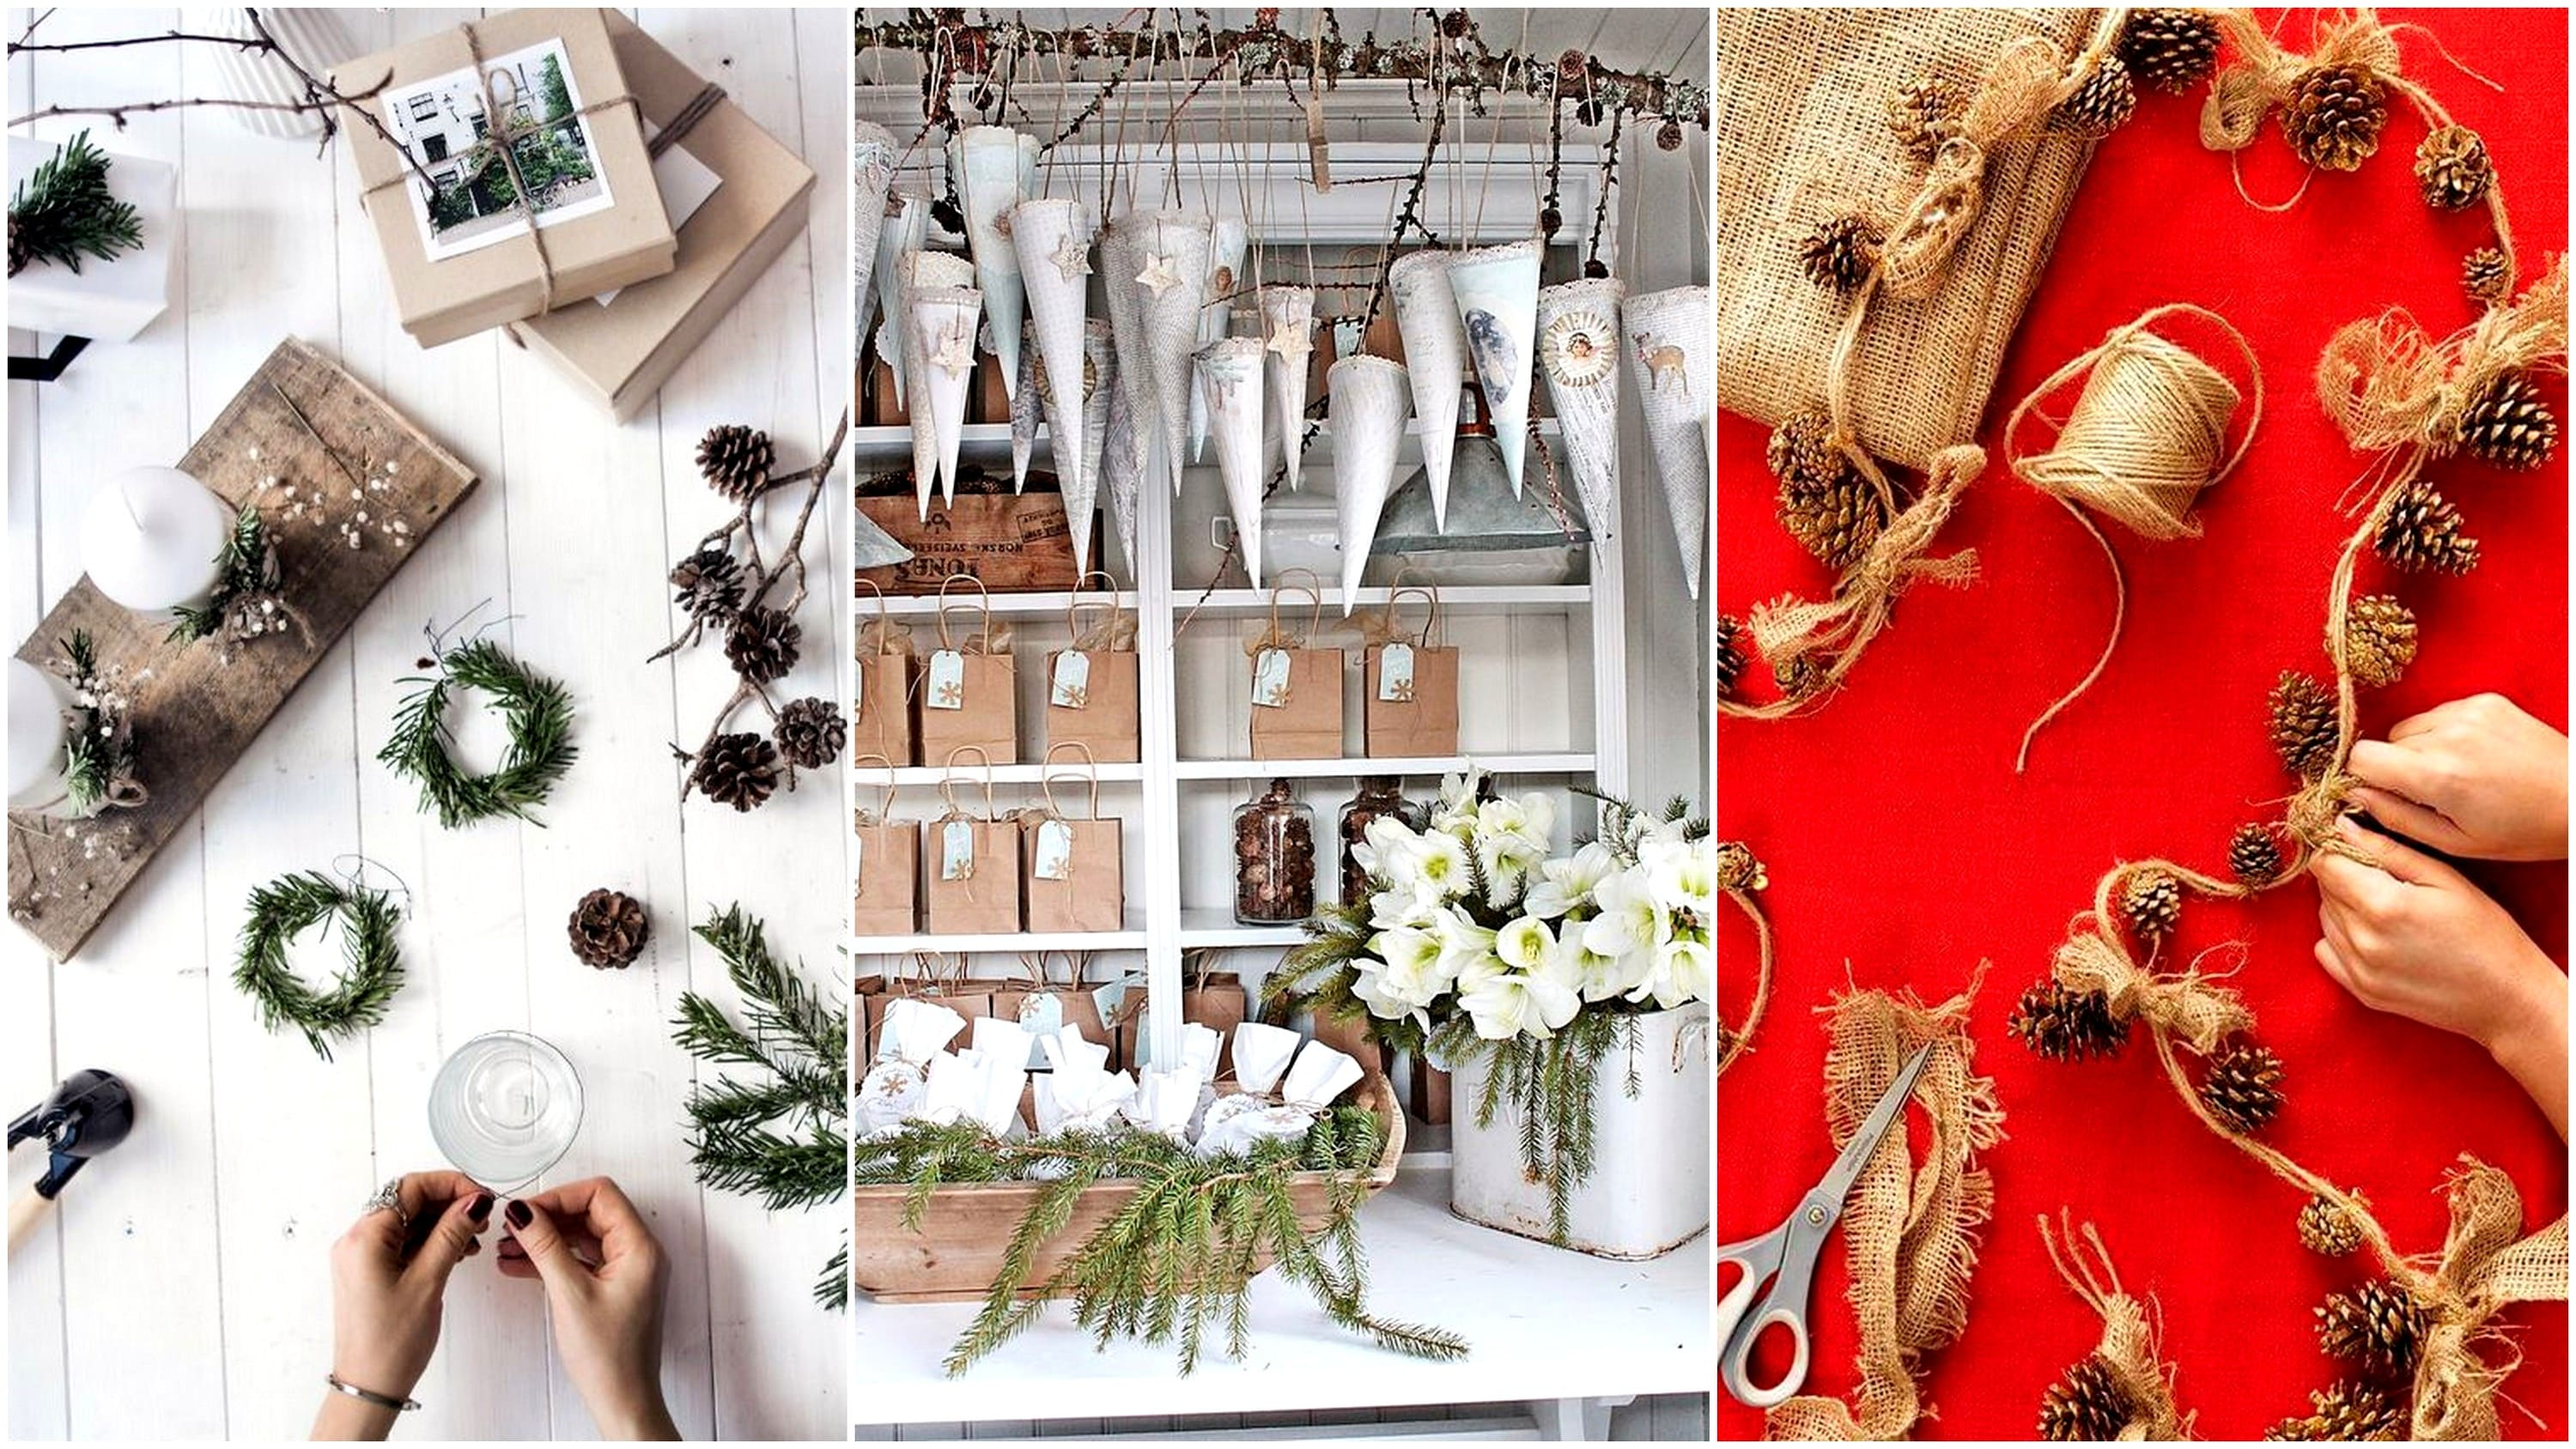 29 Splendid Ideas On How To Decorate For Christmas On A Budget